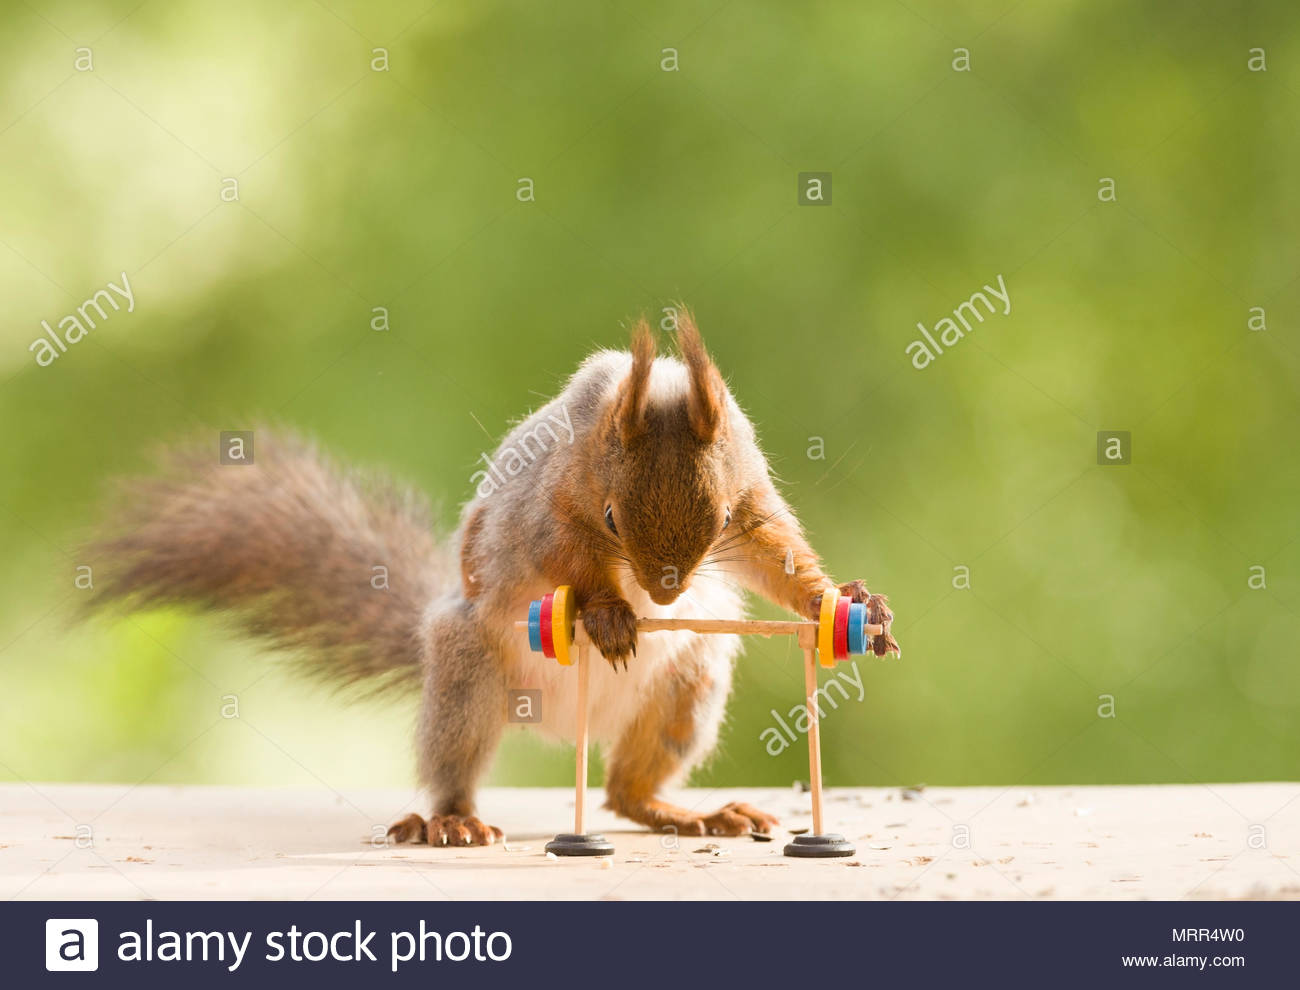 red squirrel is leaning over a Barbell - Stock Image